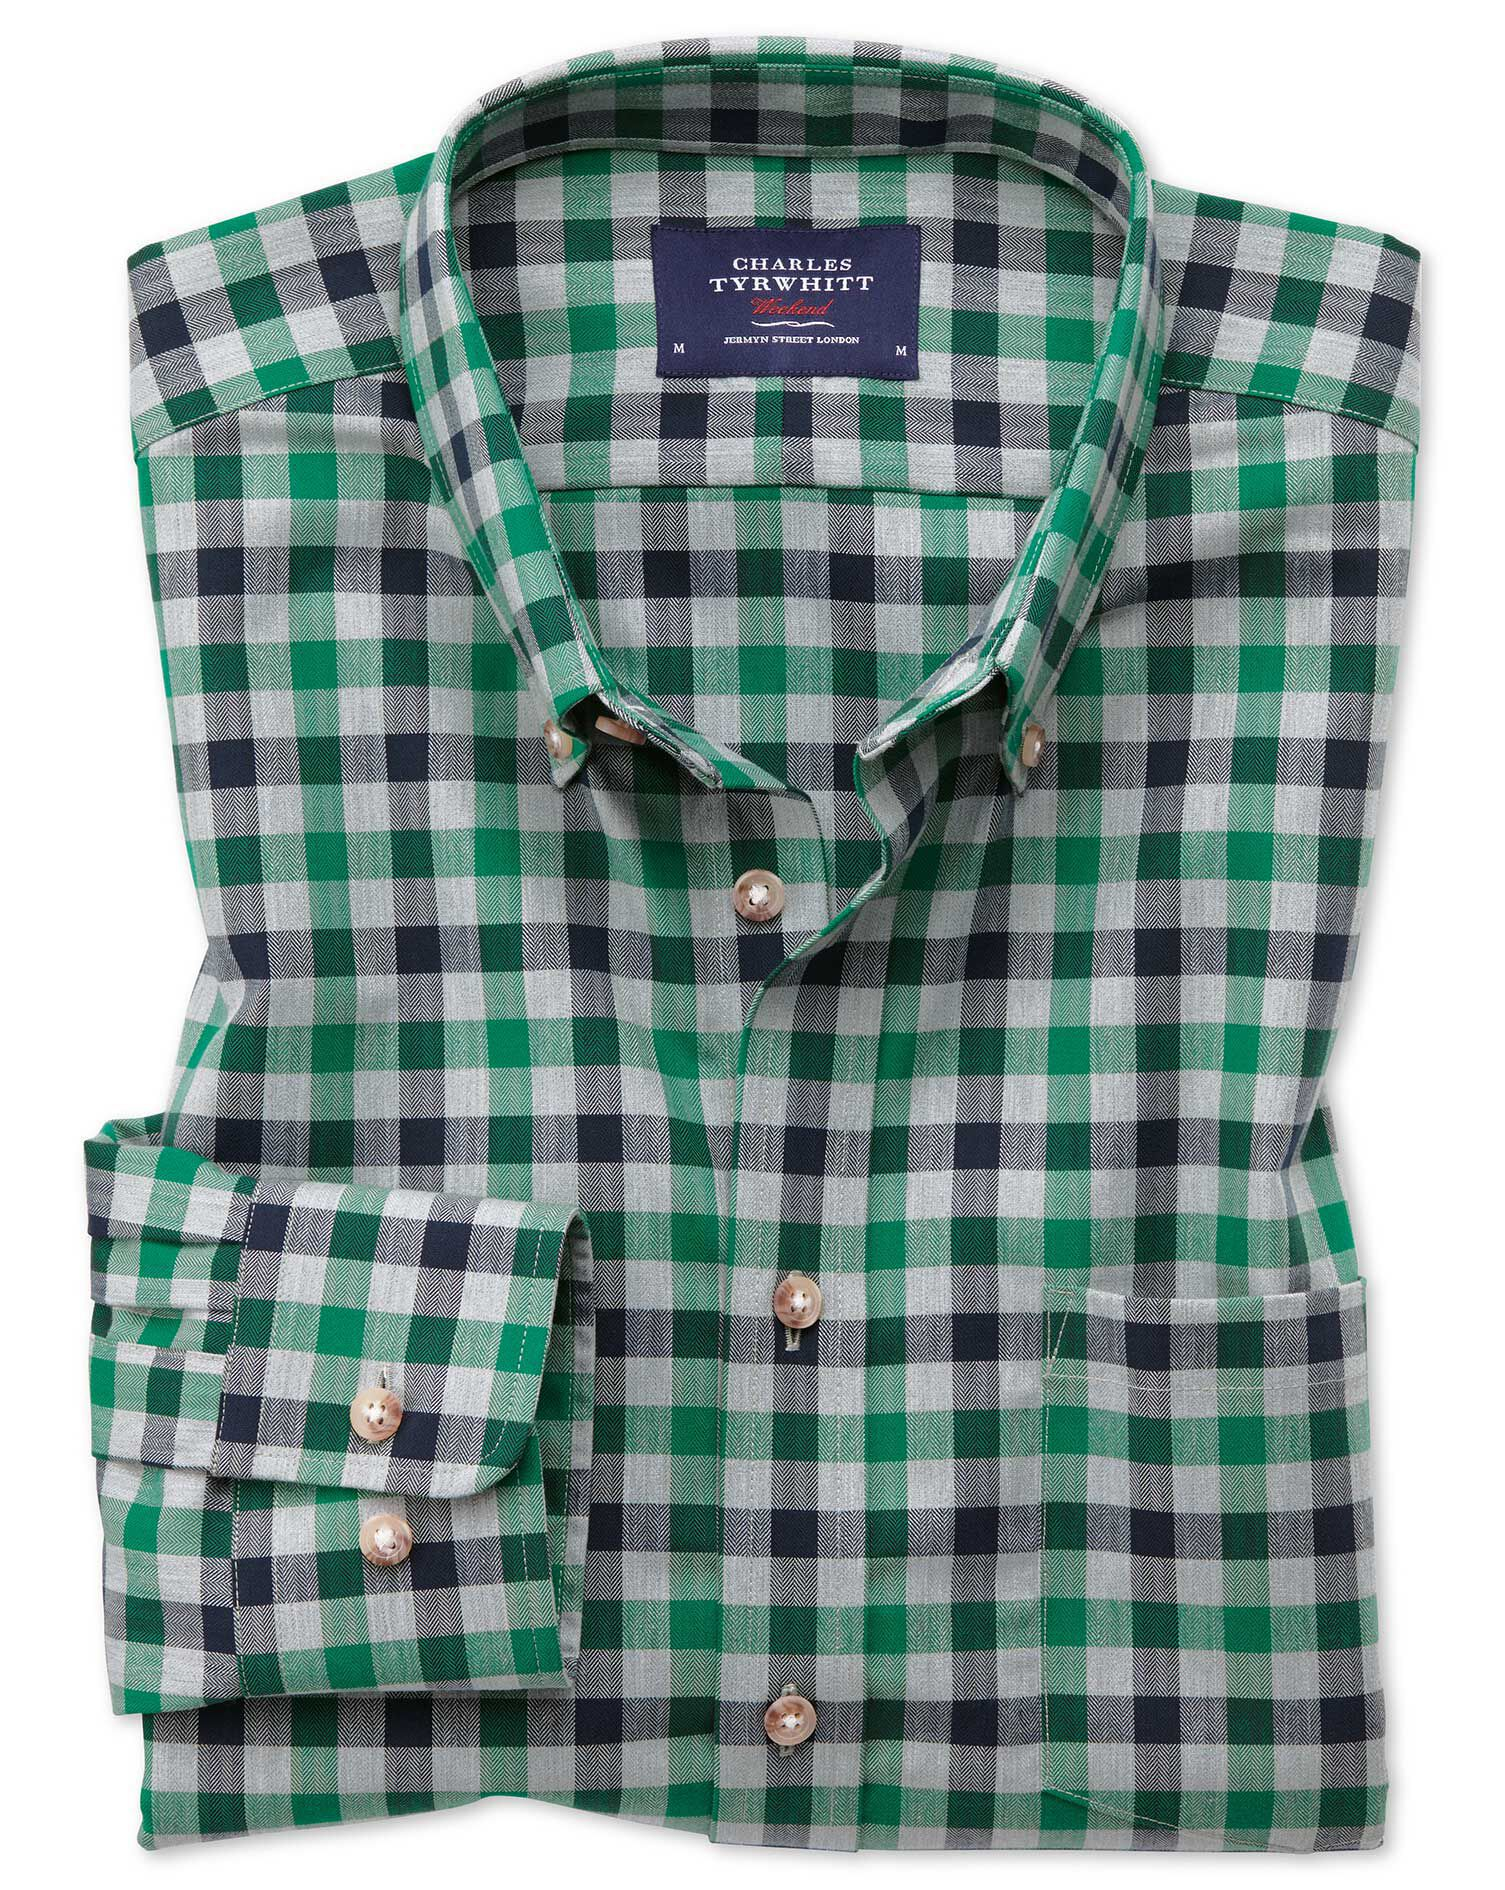 Extra Slim Fit Button-Down Non-Iron Twill Green and Navy Blue Gingham Cotton Shirt Single Cuff Size